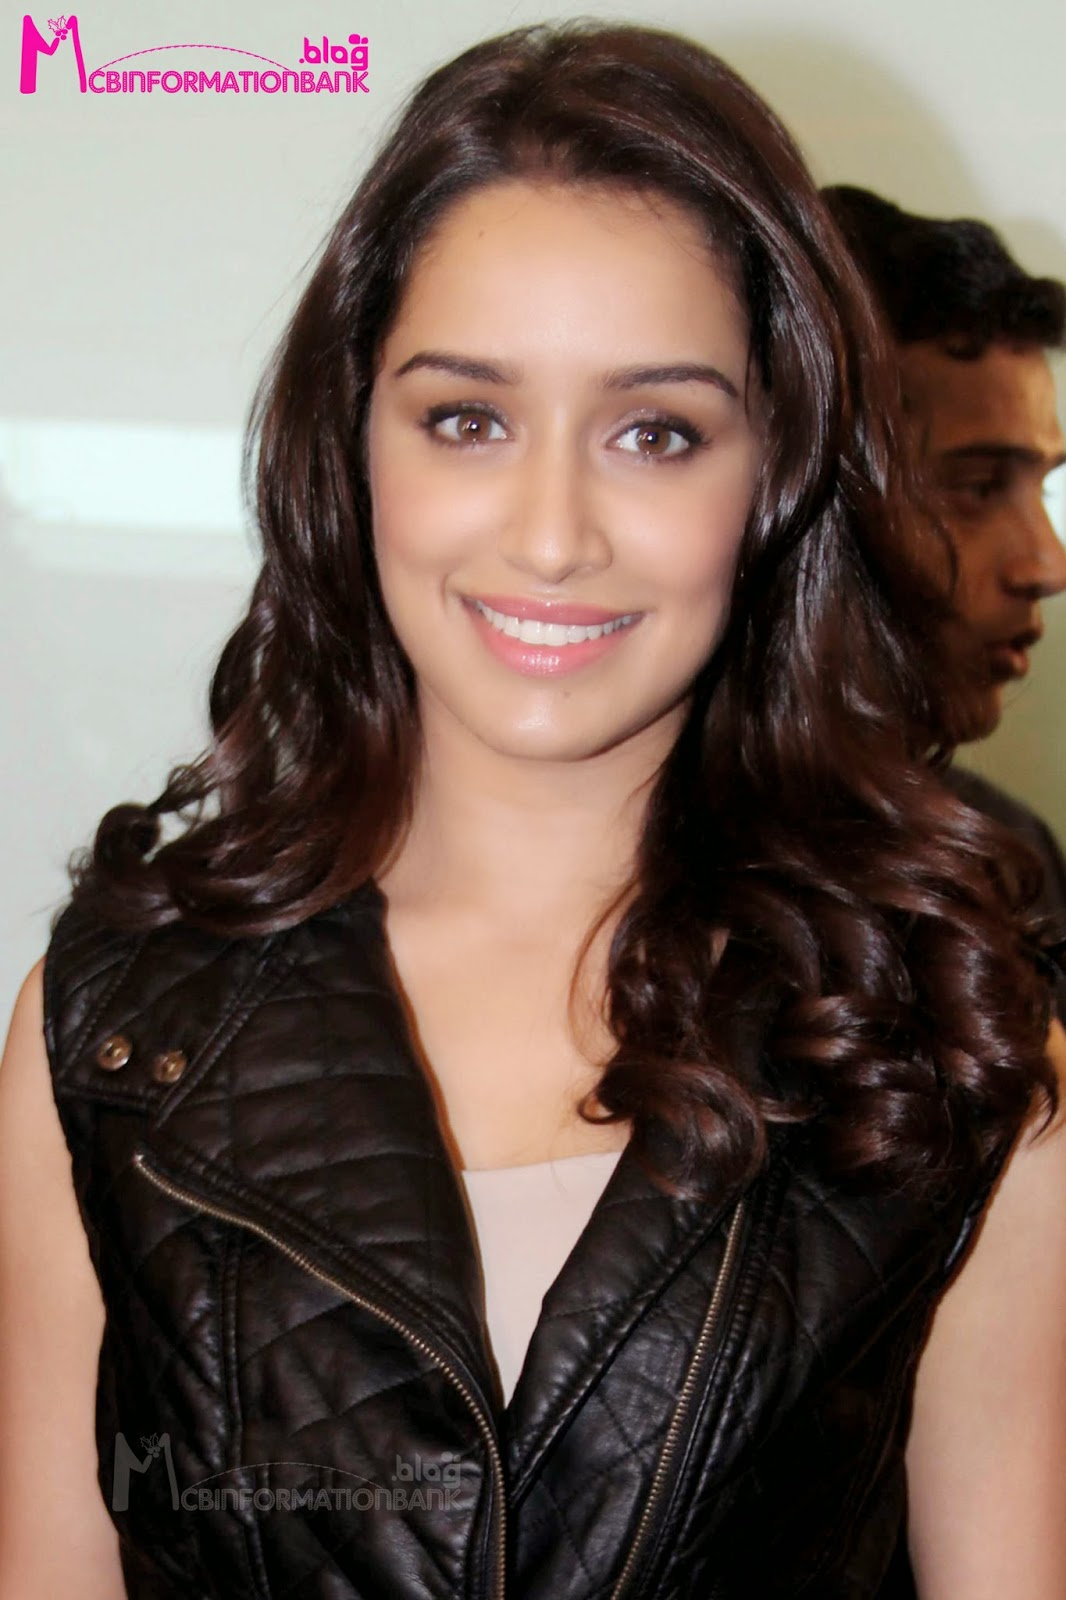 shraddha kapoor biography and filmograppy information | information